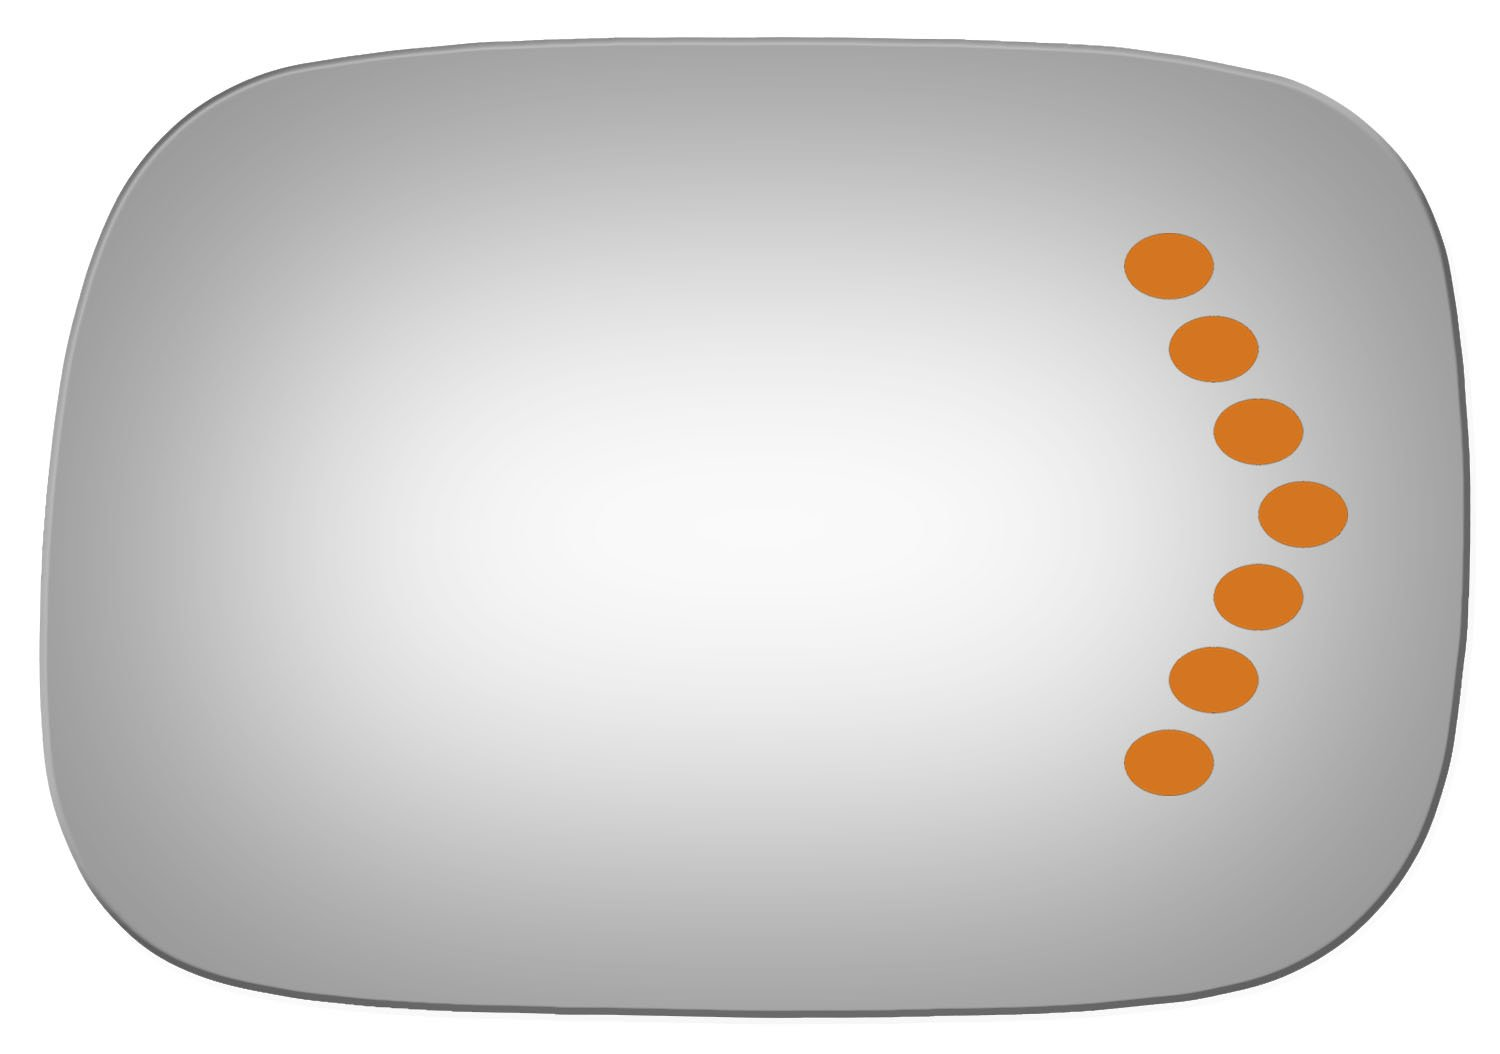 Burco 5281S Convex Passenger Side Power Replacement Mirror Glass for 05-10 Toyota Avalon 2005, 2006, 2007, 2008, 2009, 2010